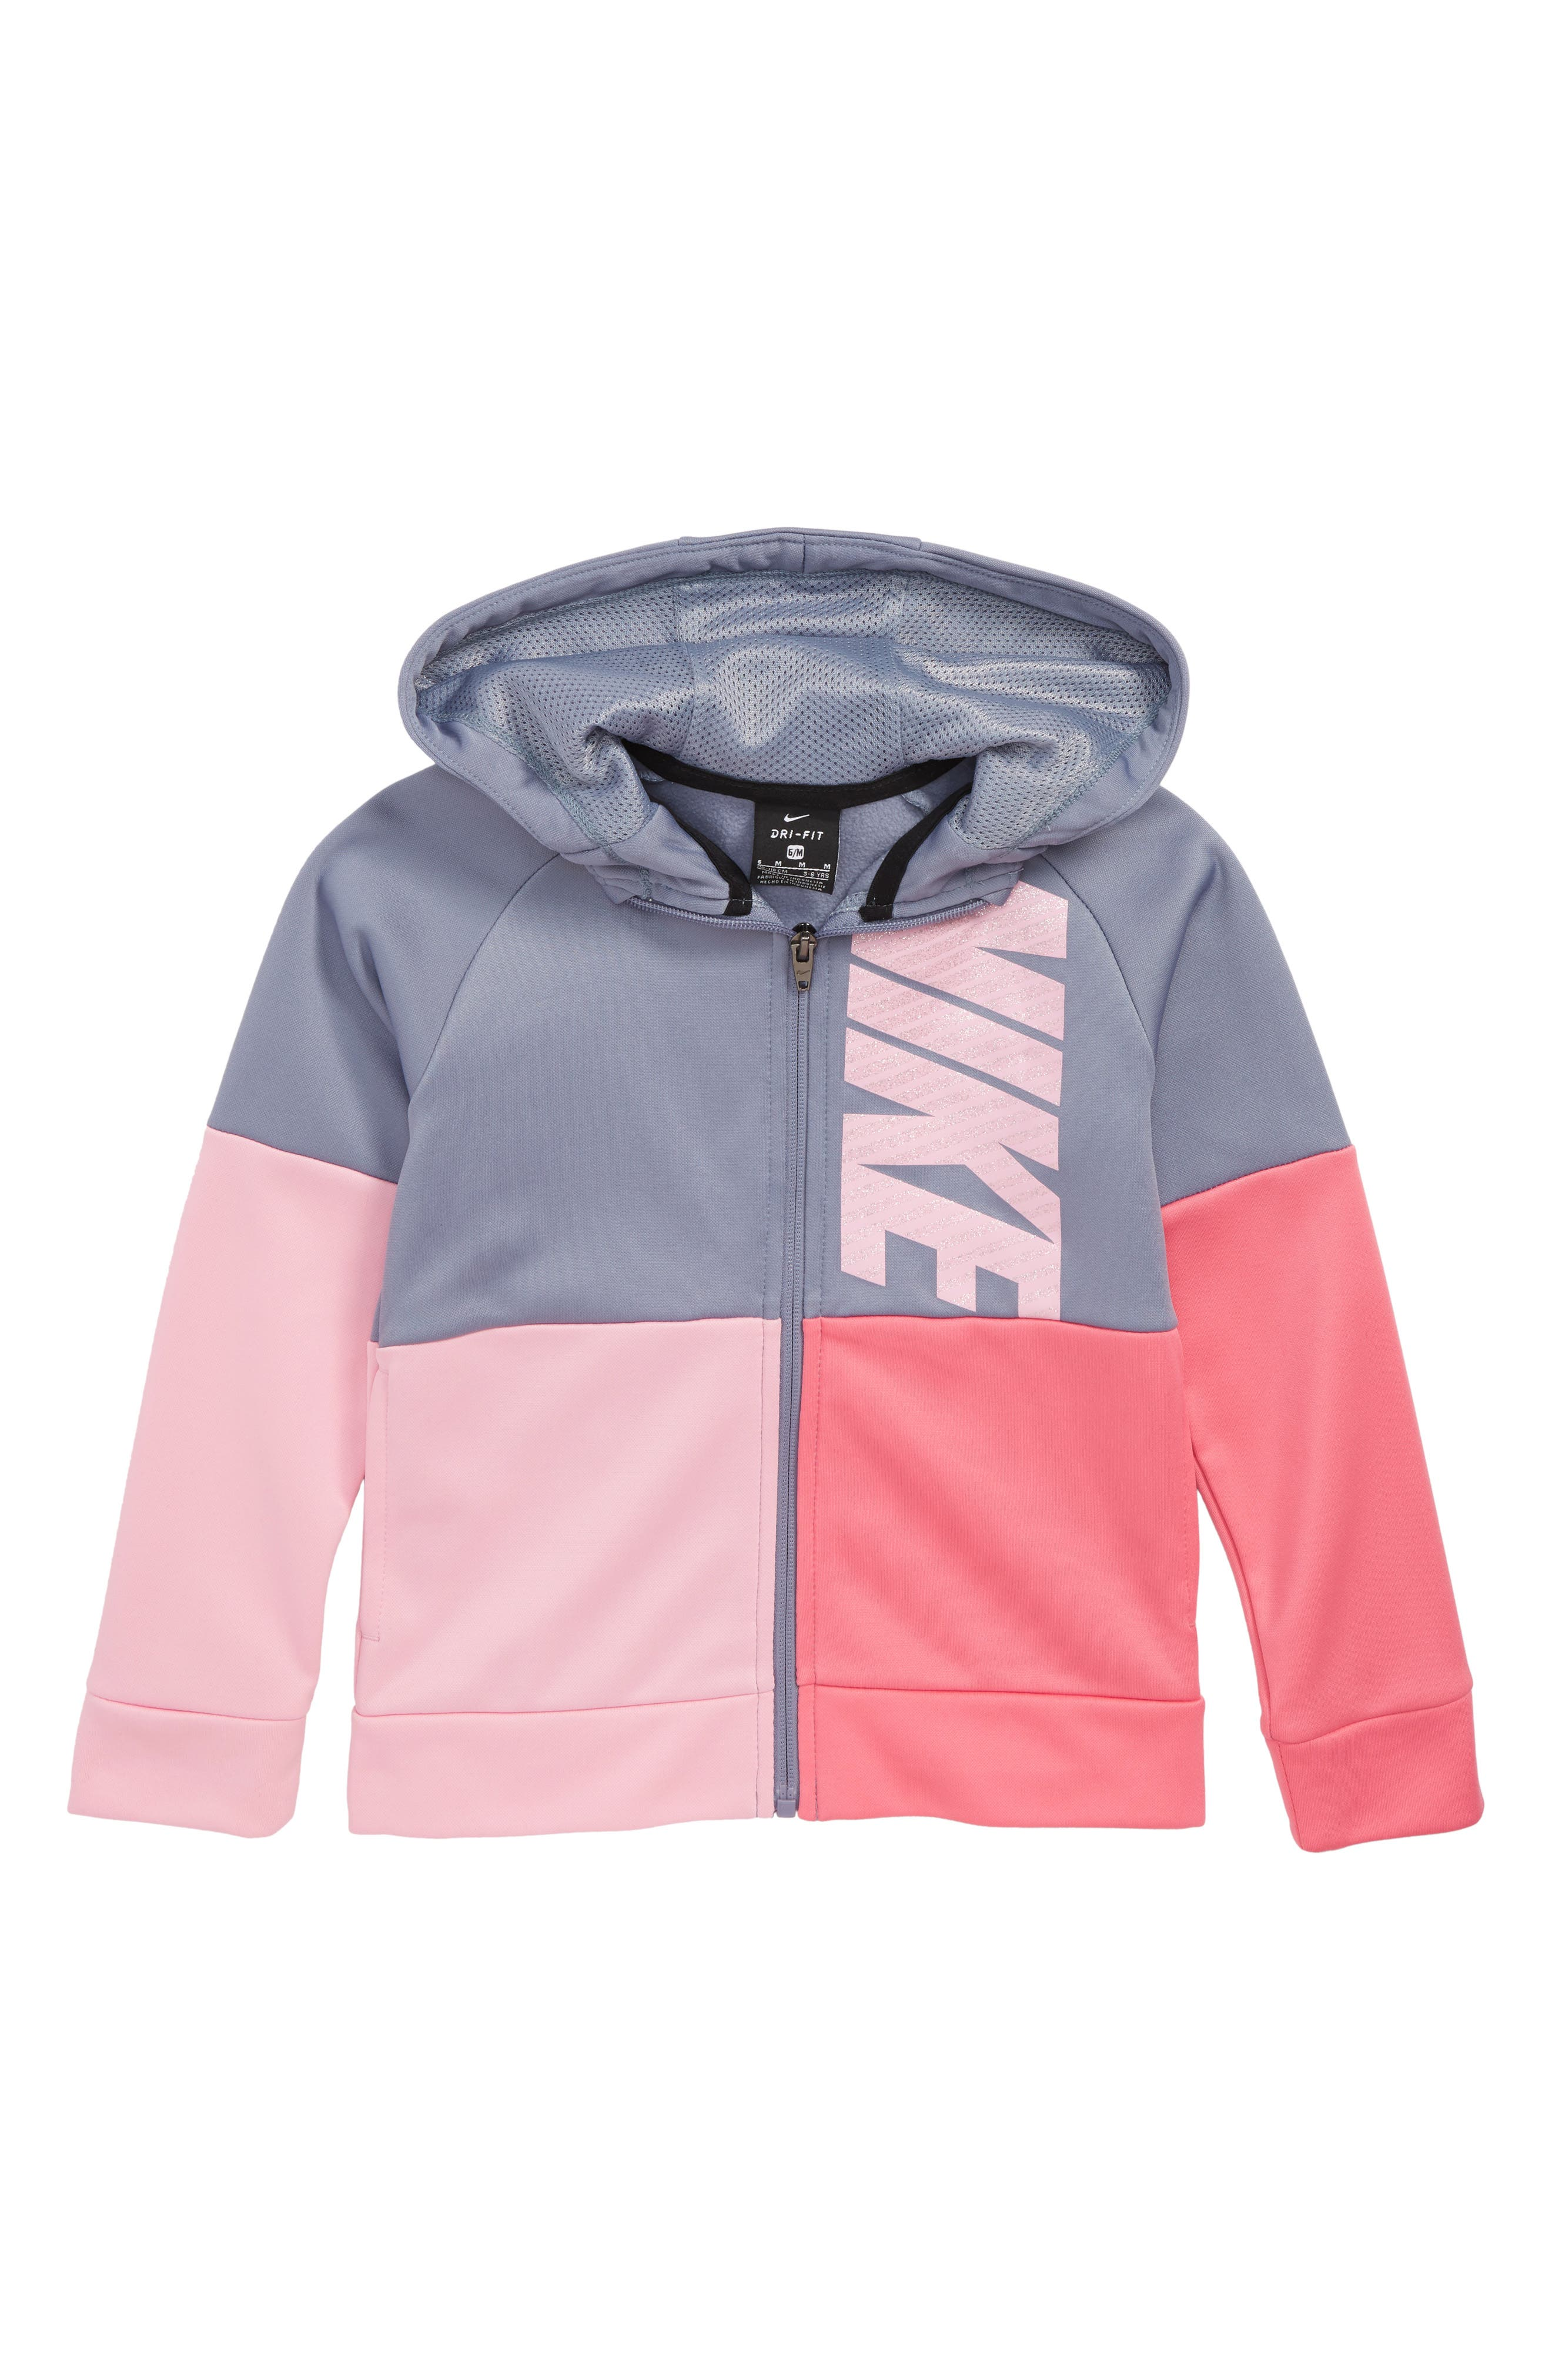 Therma Hooded Colorblock Jacket,                             Main thumbnail 1, color,                             021